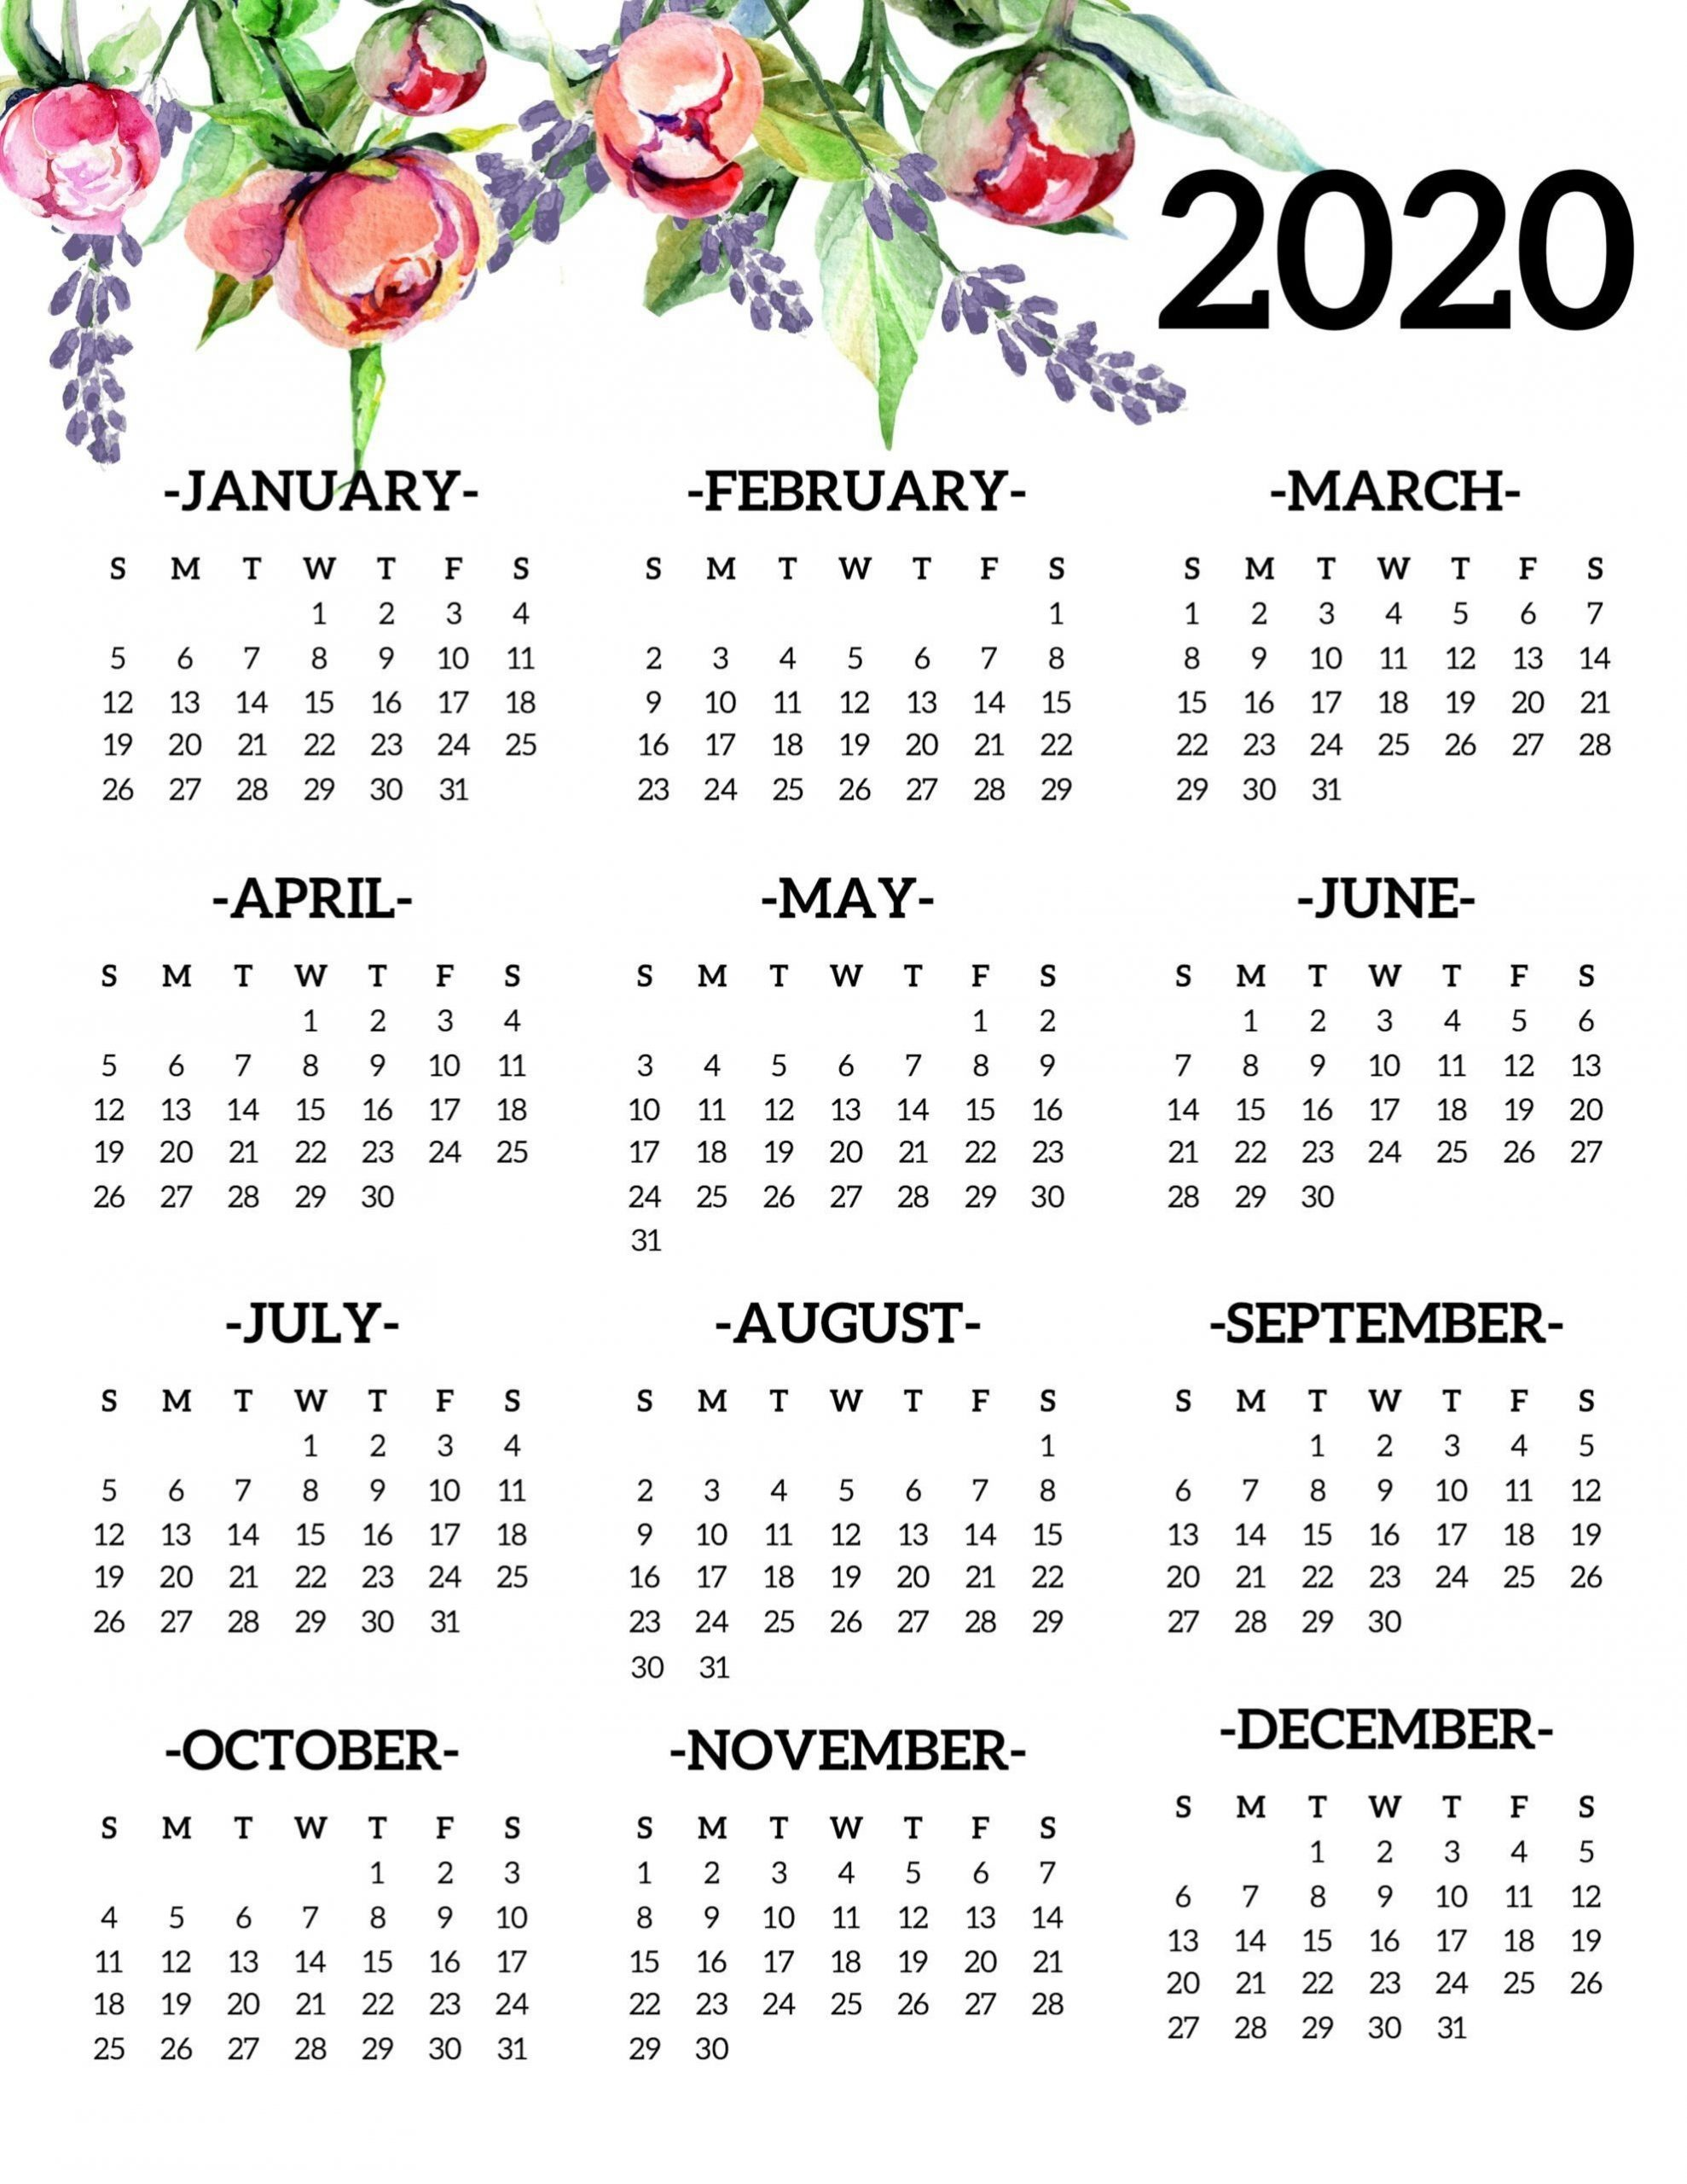 Free Printable 2020 Calendar Yearly E Page Floral Free Blank intended for Free Printable Year At A Glance Calendars No Download 2020